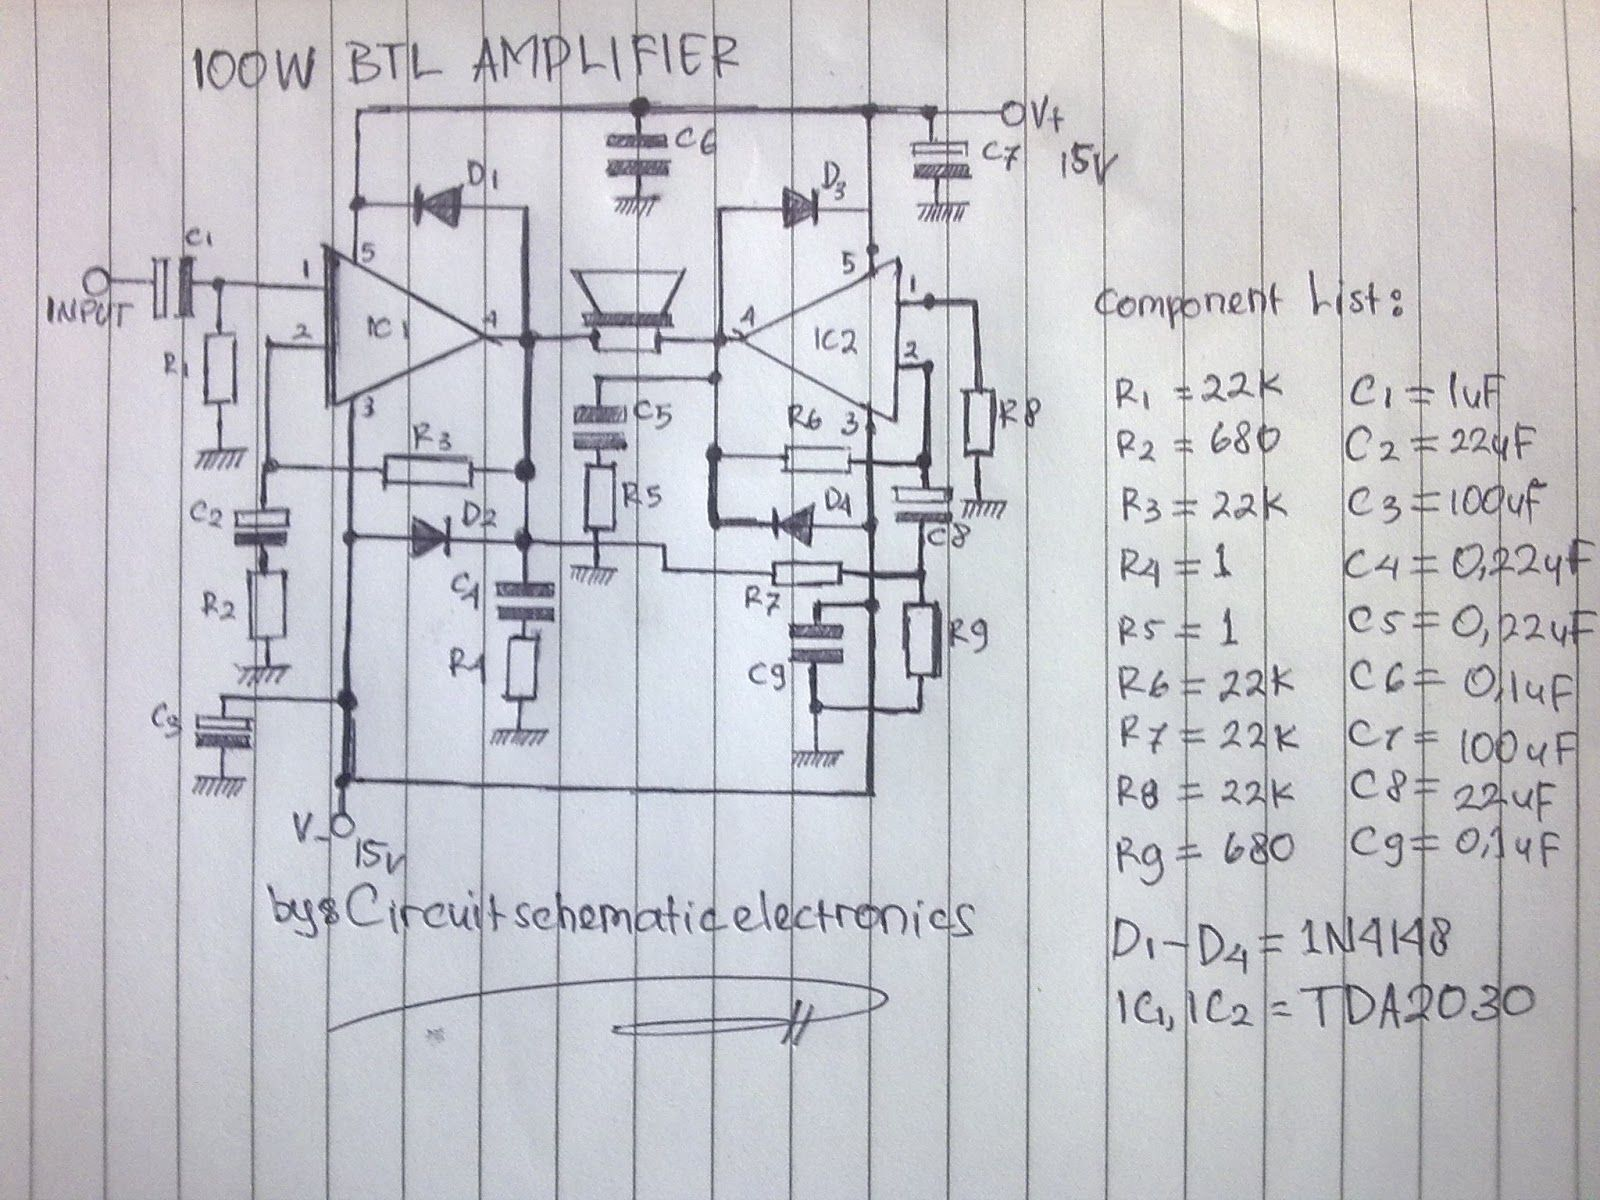 hight resolution of 100w btl tda2030 amplifier circuit